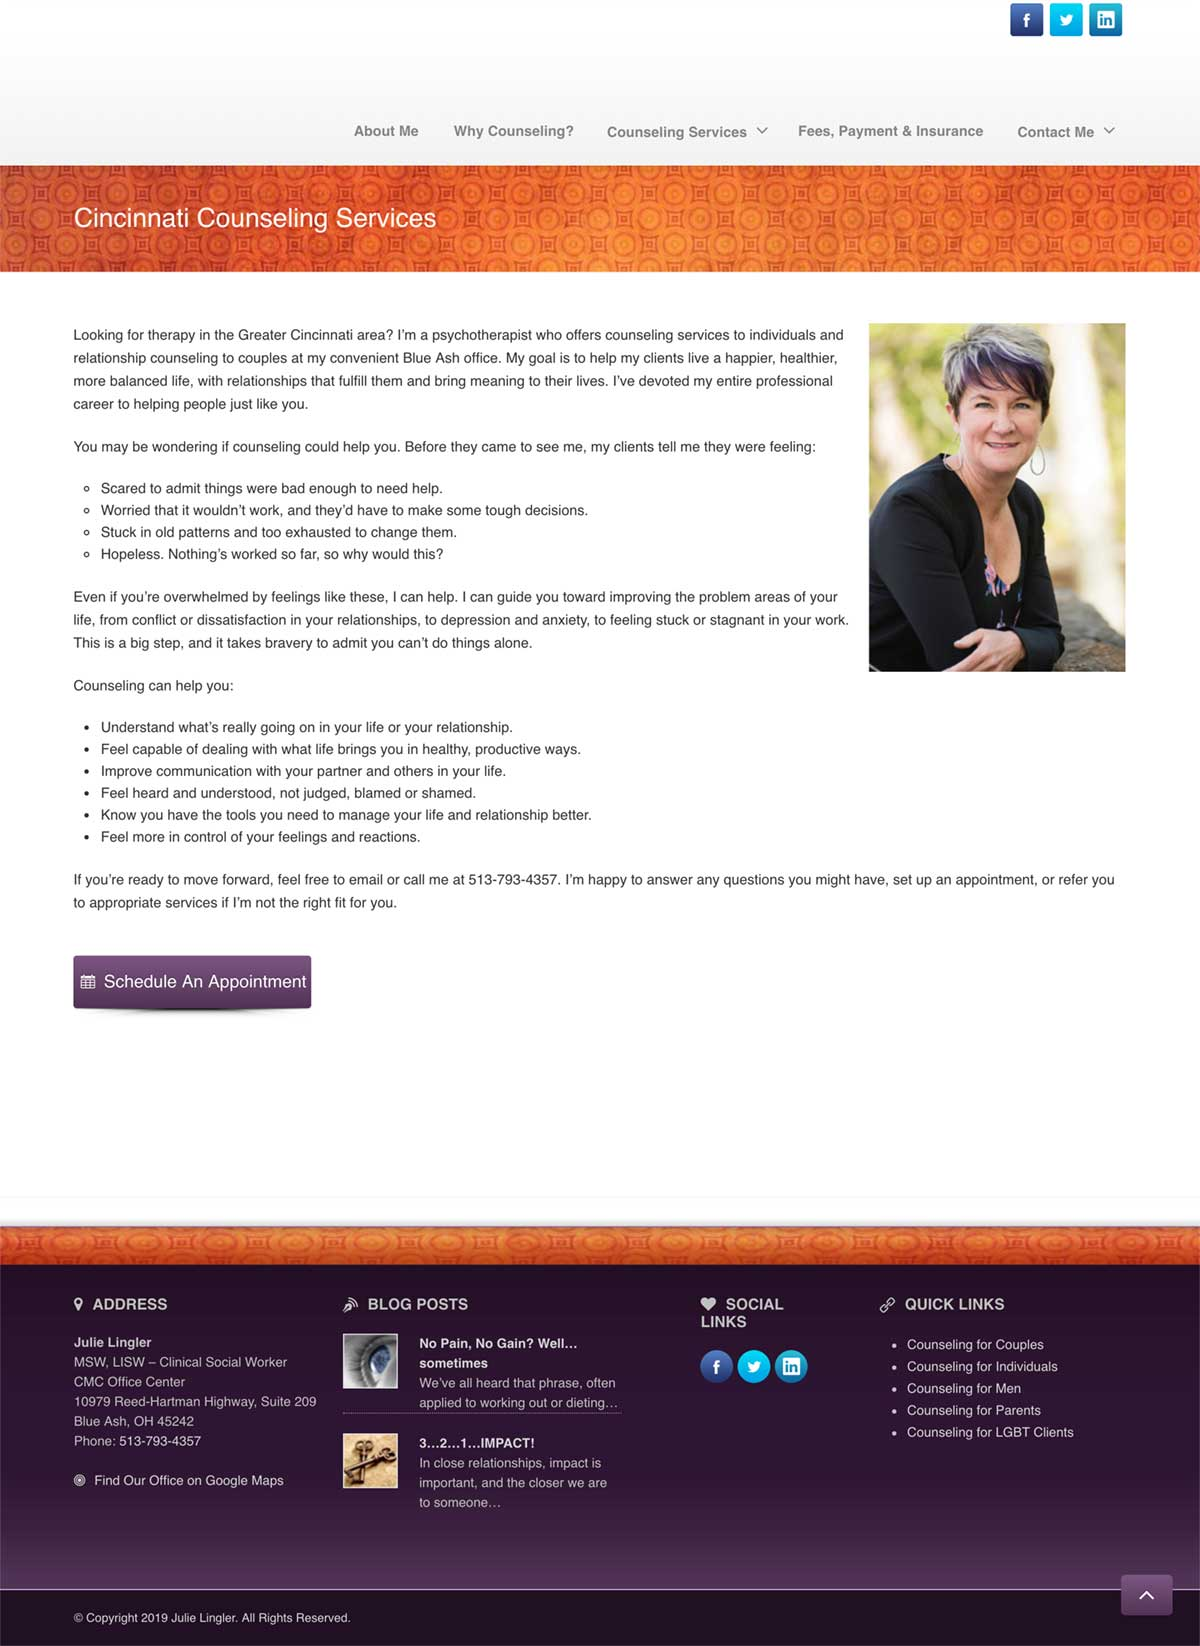 Julie Lingler therapist web design sample